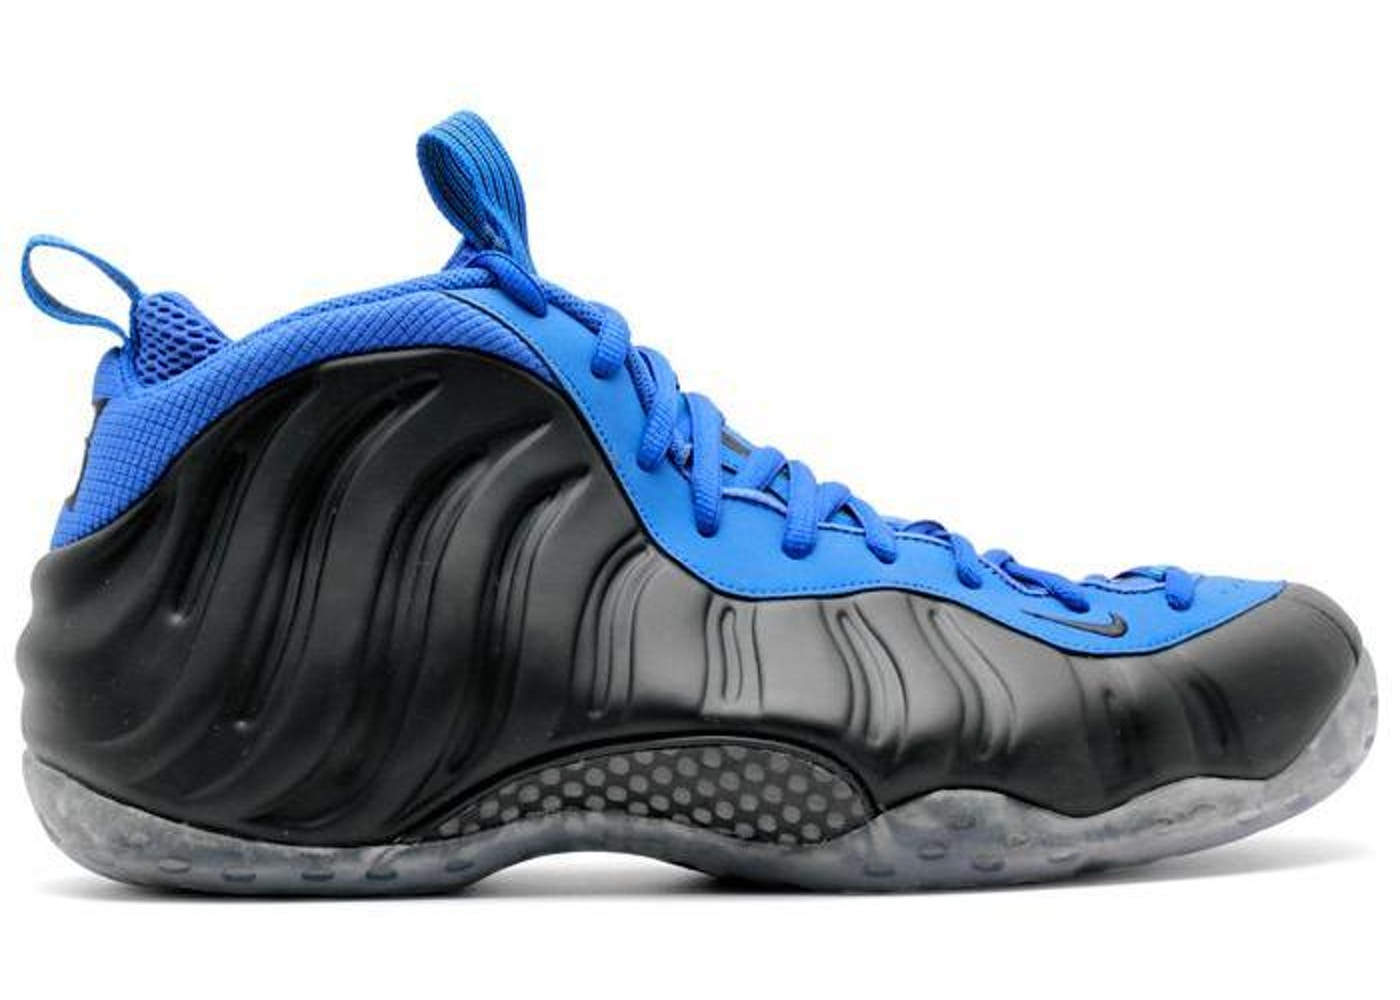 sale retailer a534a 8f579 ... Air Foamposite One Sole Collector Penny Pack ...